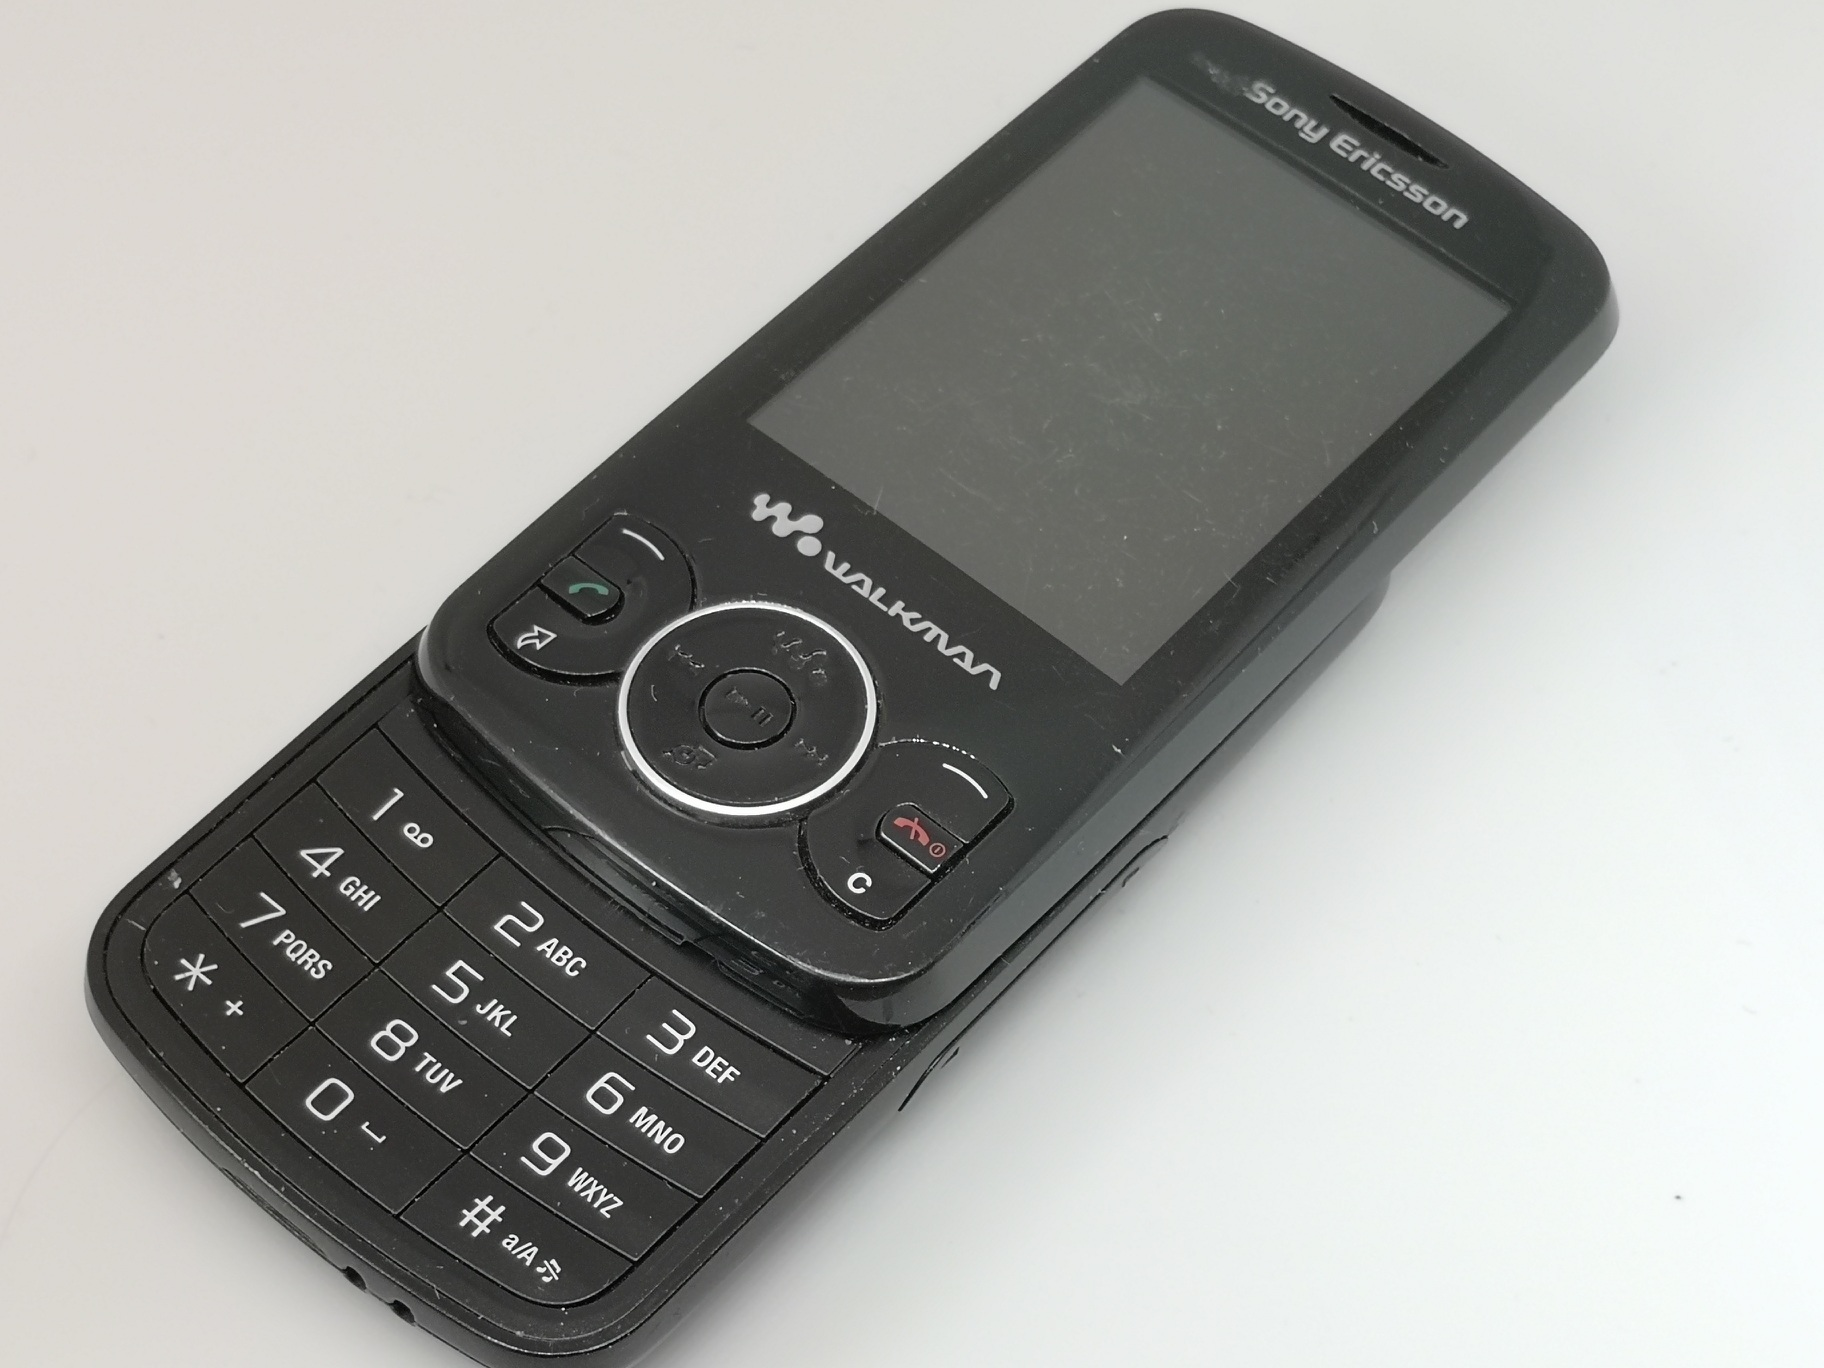 Sony Ericsson W100i Review - Spiro Is The New Mobile Name